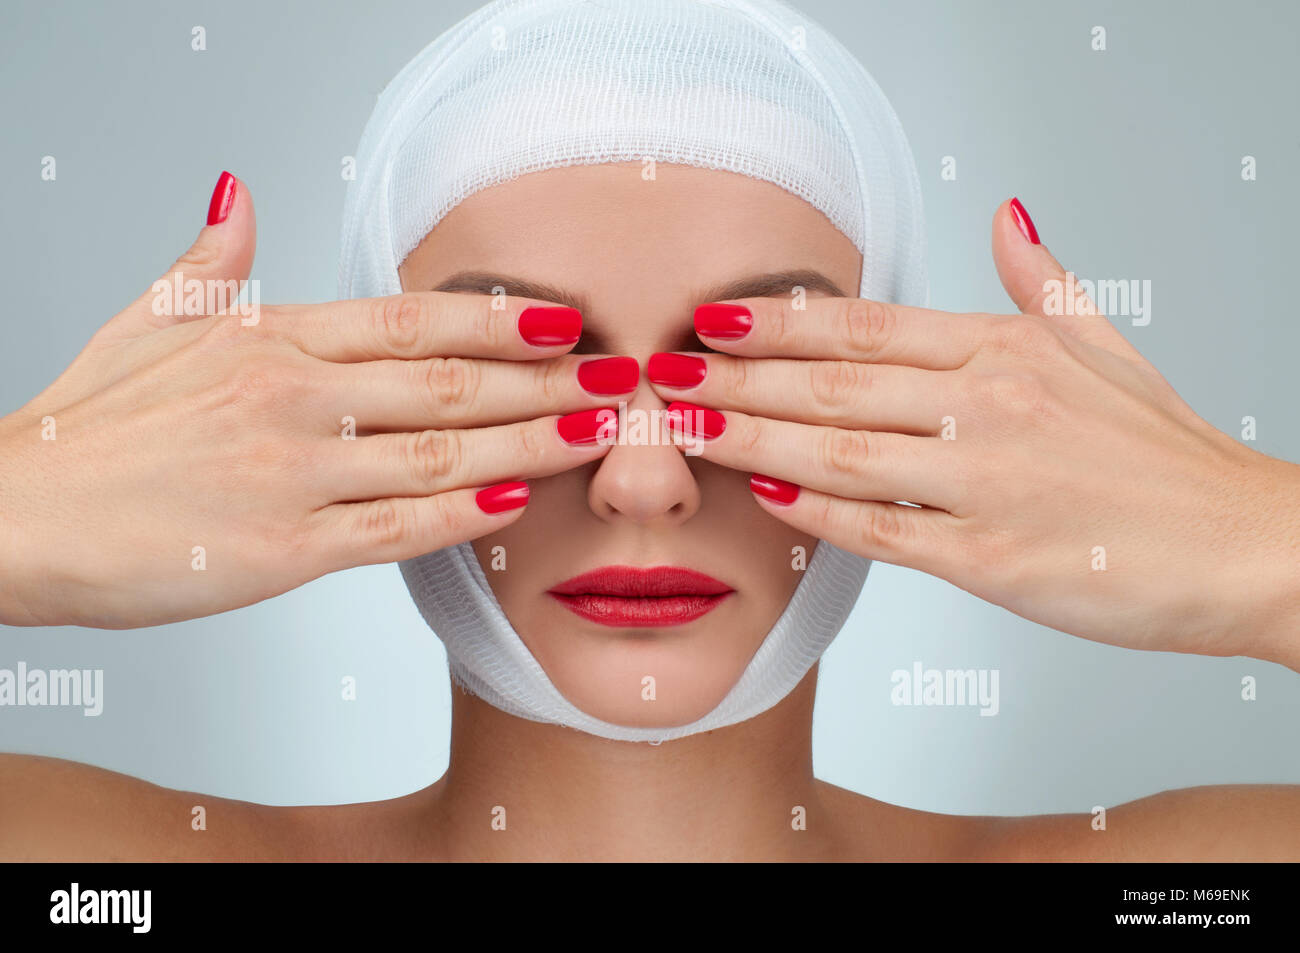 Bandaged Eyes Stock Photos Bandaged Eyes Stock Images Alamy